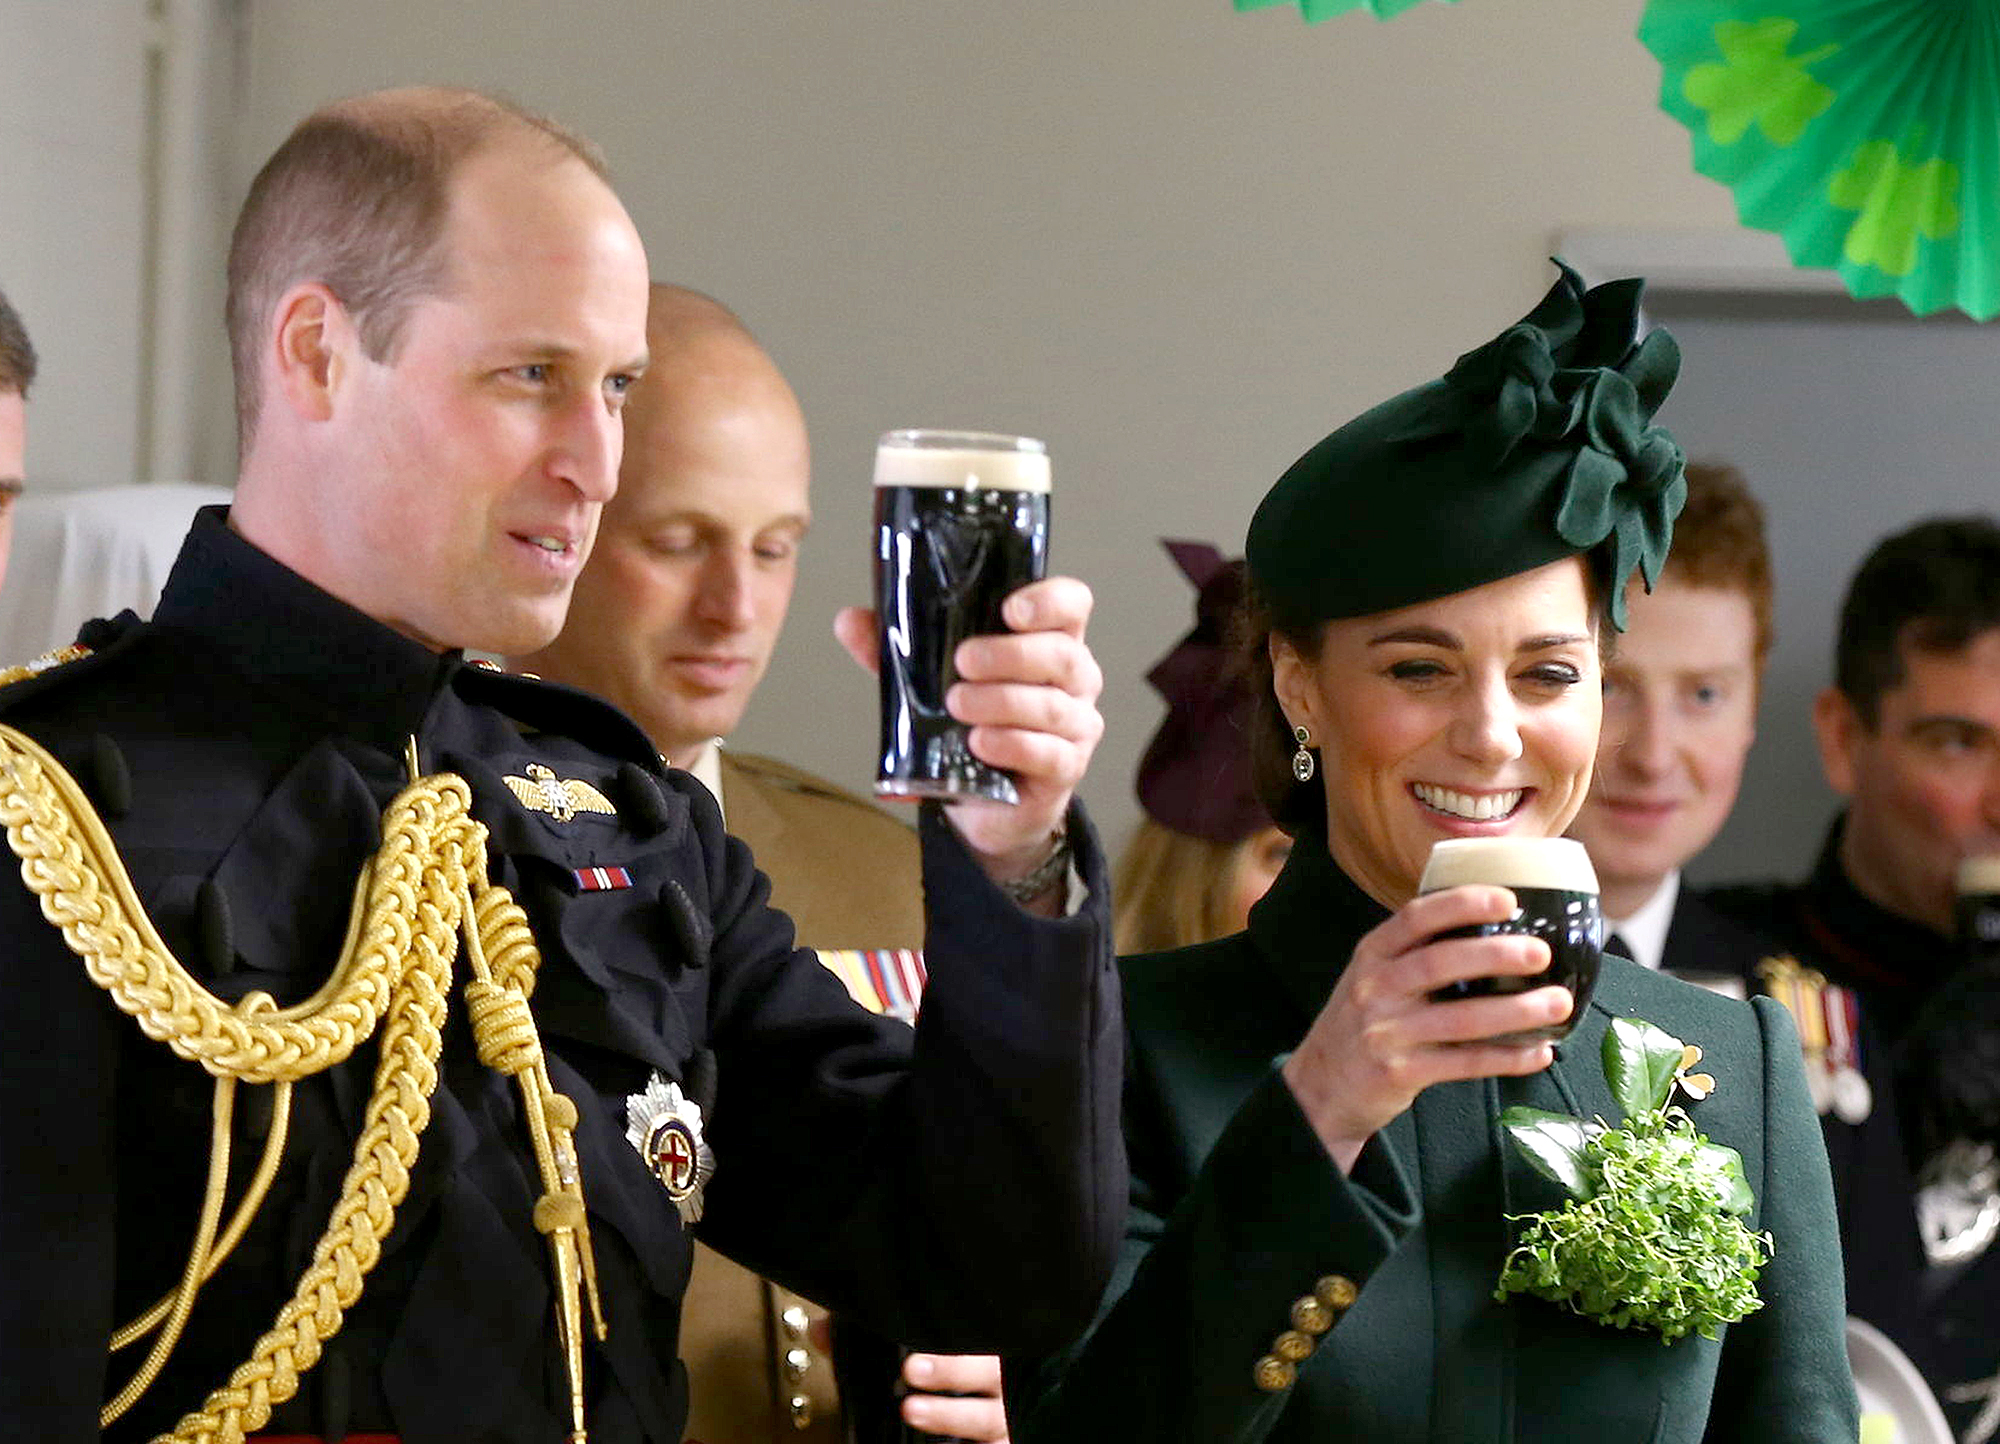 duchess-kate-prince-william-beer - The royal pair met with Irish Guards and toasted with pints of Guinness after attending the St. Patrick's Day parade at Cavalry Barracks in Hounslow, England, on March 17, 2019.